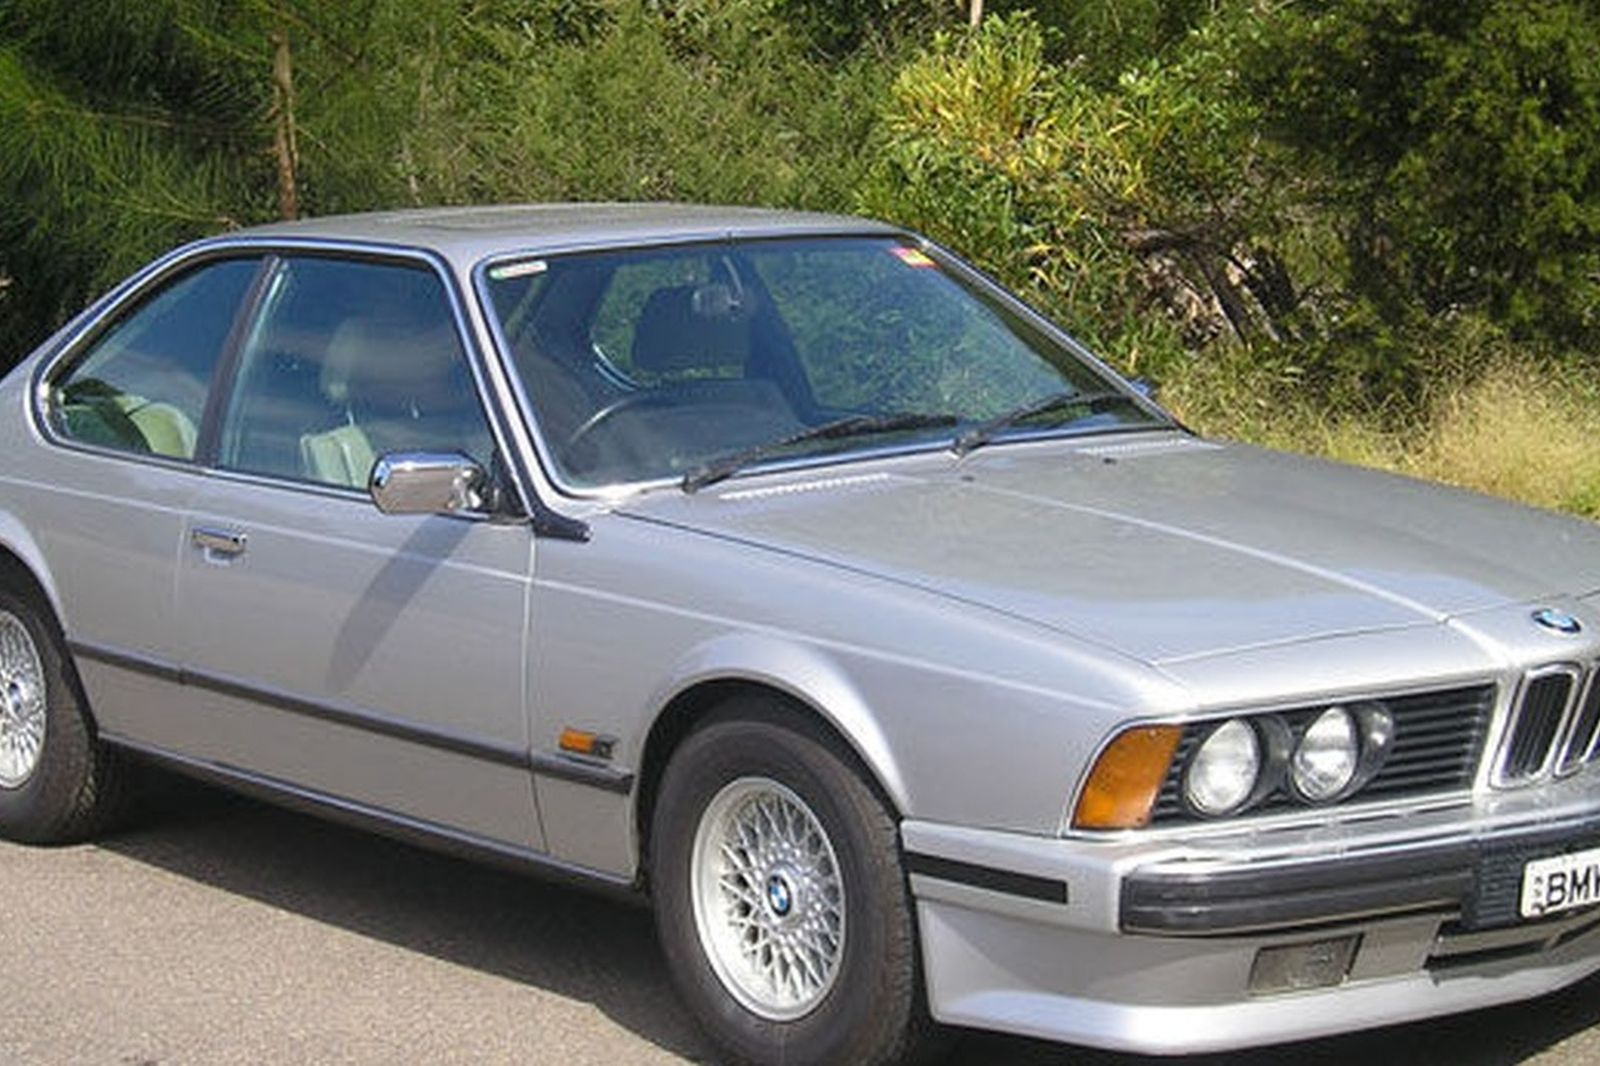 1983 bmw 635 csi coupe sold bmw 635 csi coupe auctions lot 26 shannons E24 633CSi at nearapp.co